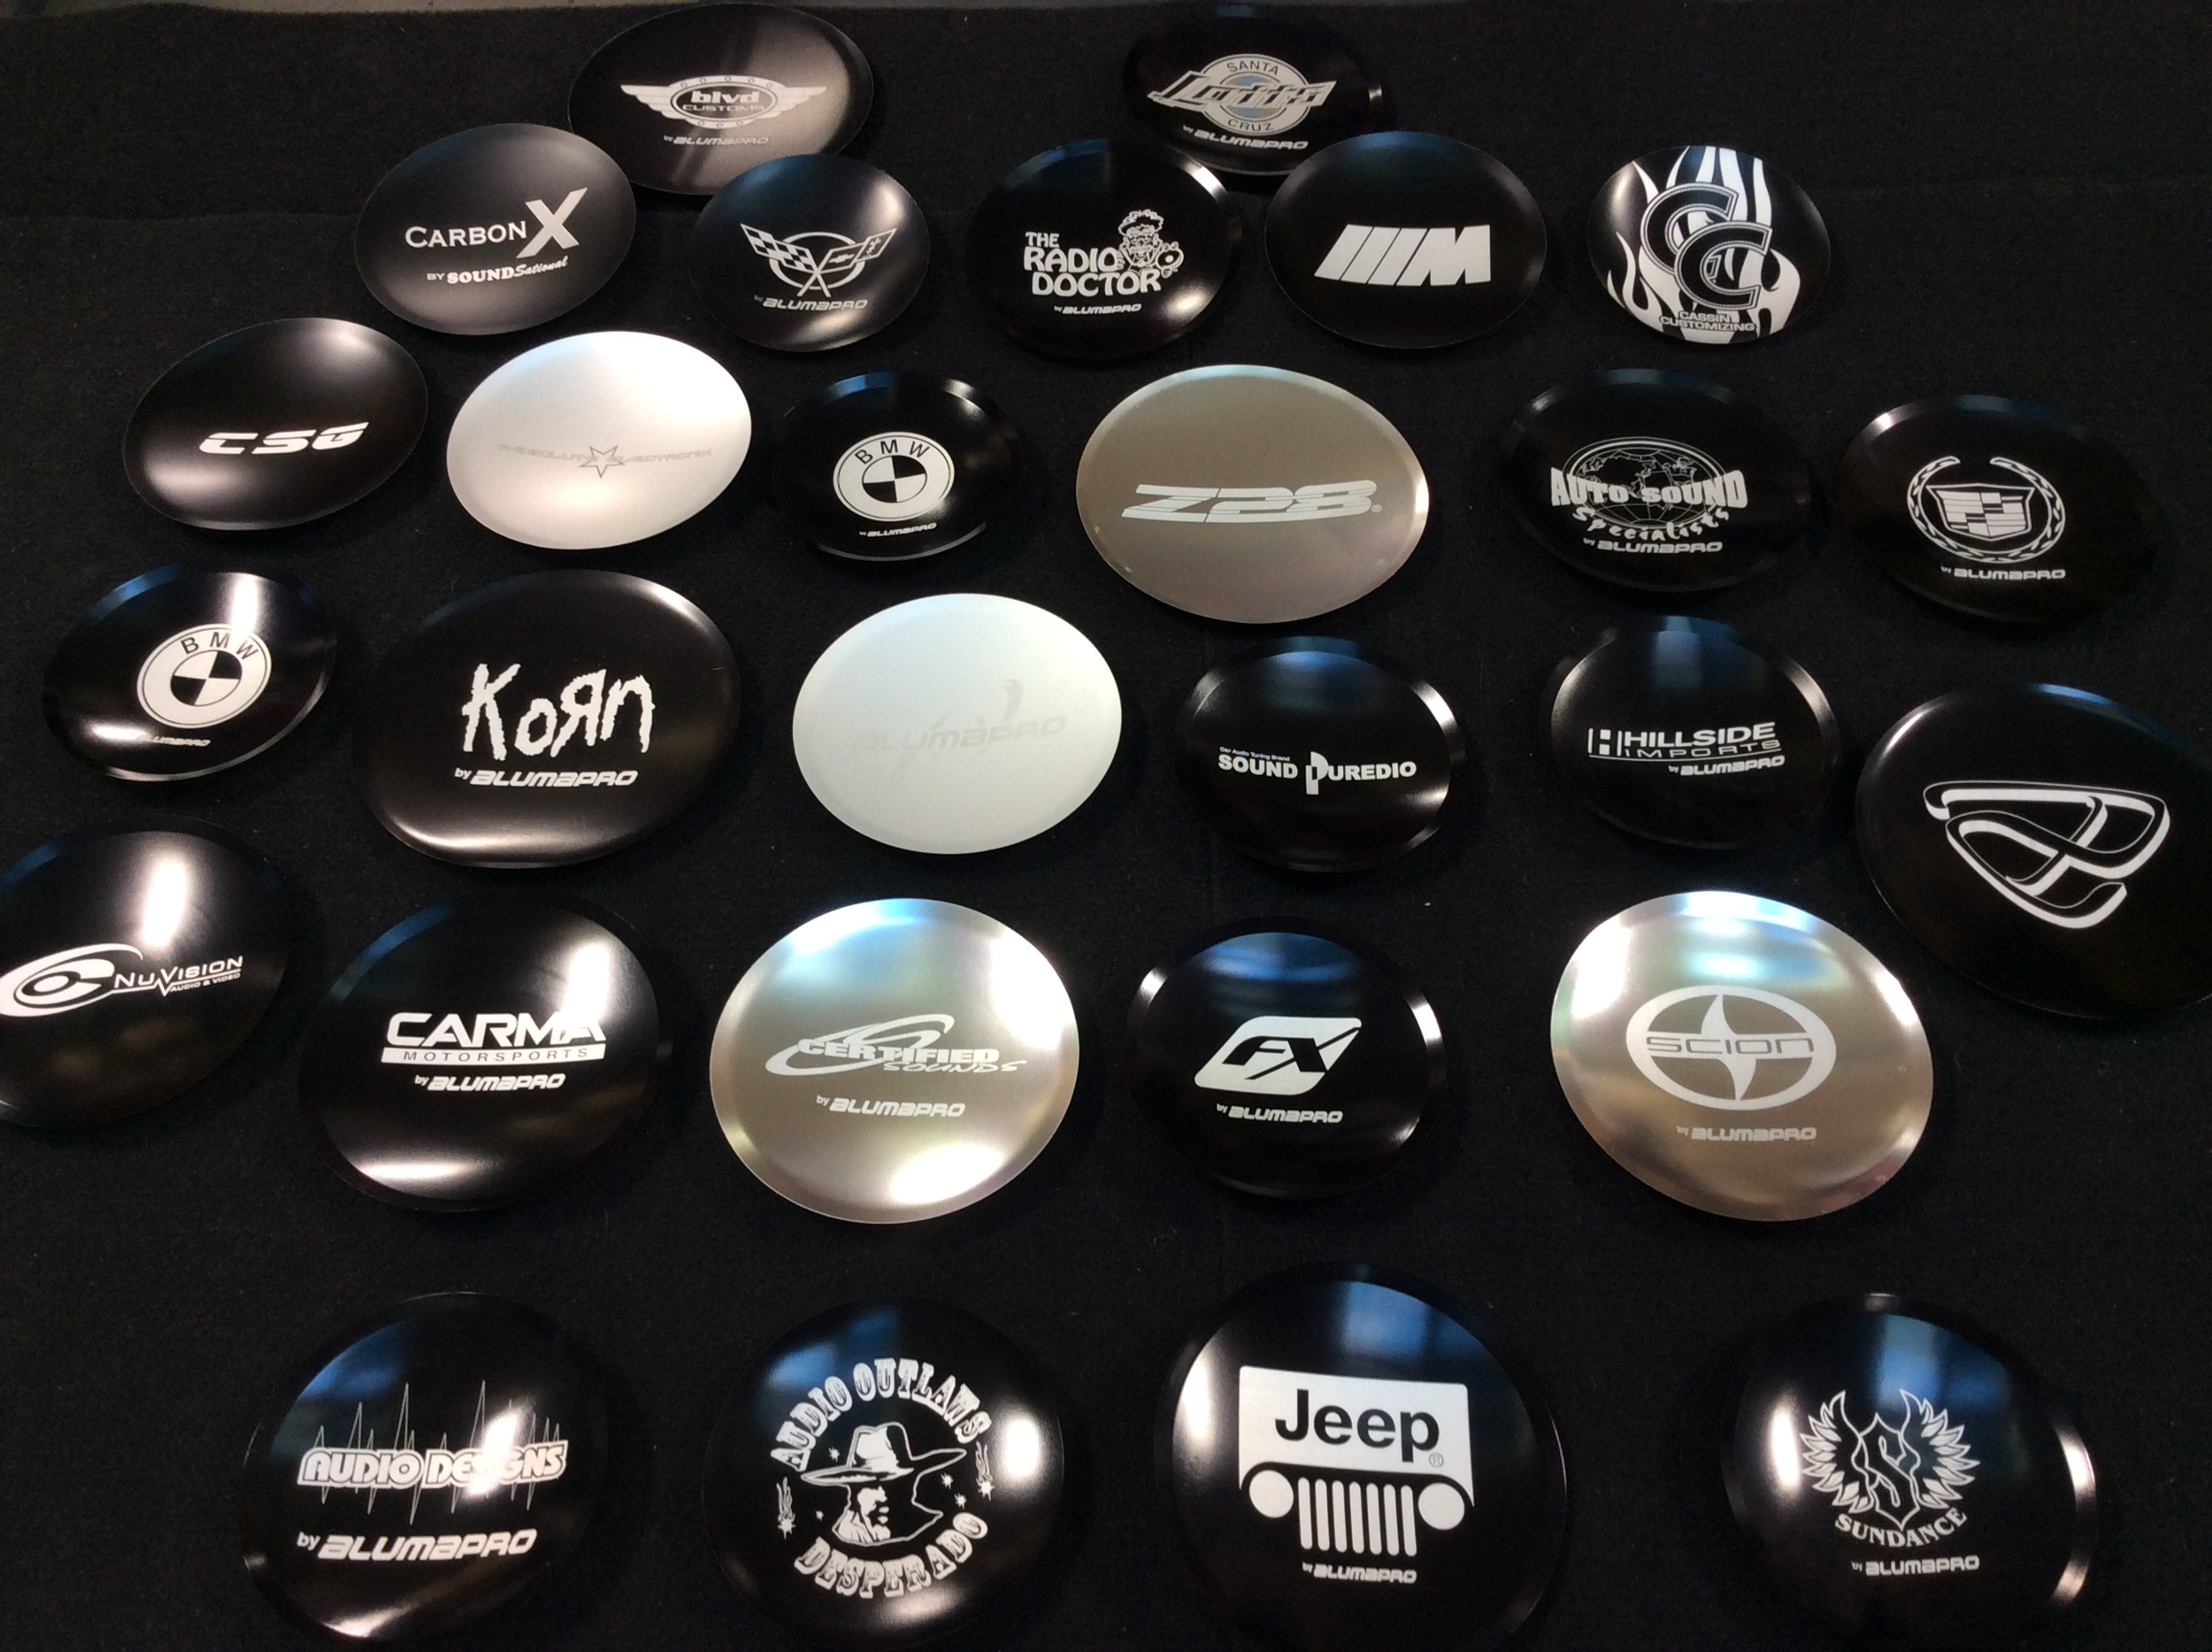 Custom Dustcaps - · Anodized Dustcaps· Fully Customizable· Laser Etched· Built to Last· Excellent Brand Exposure!